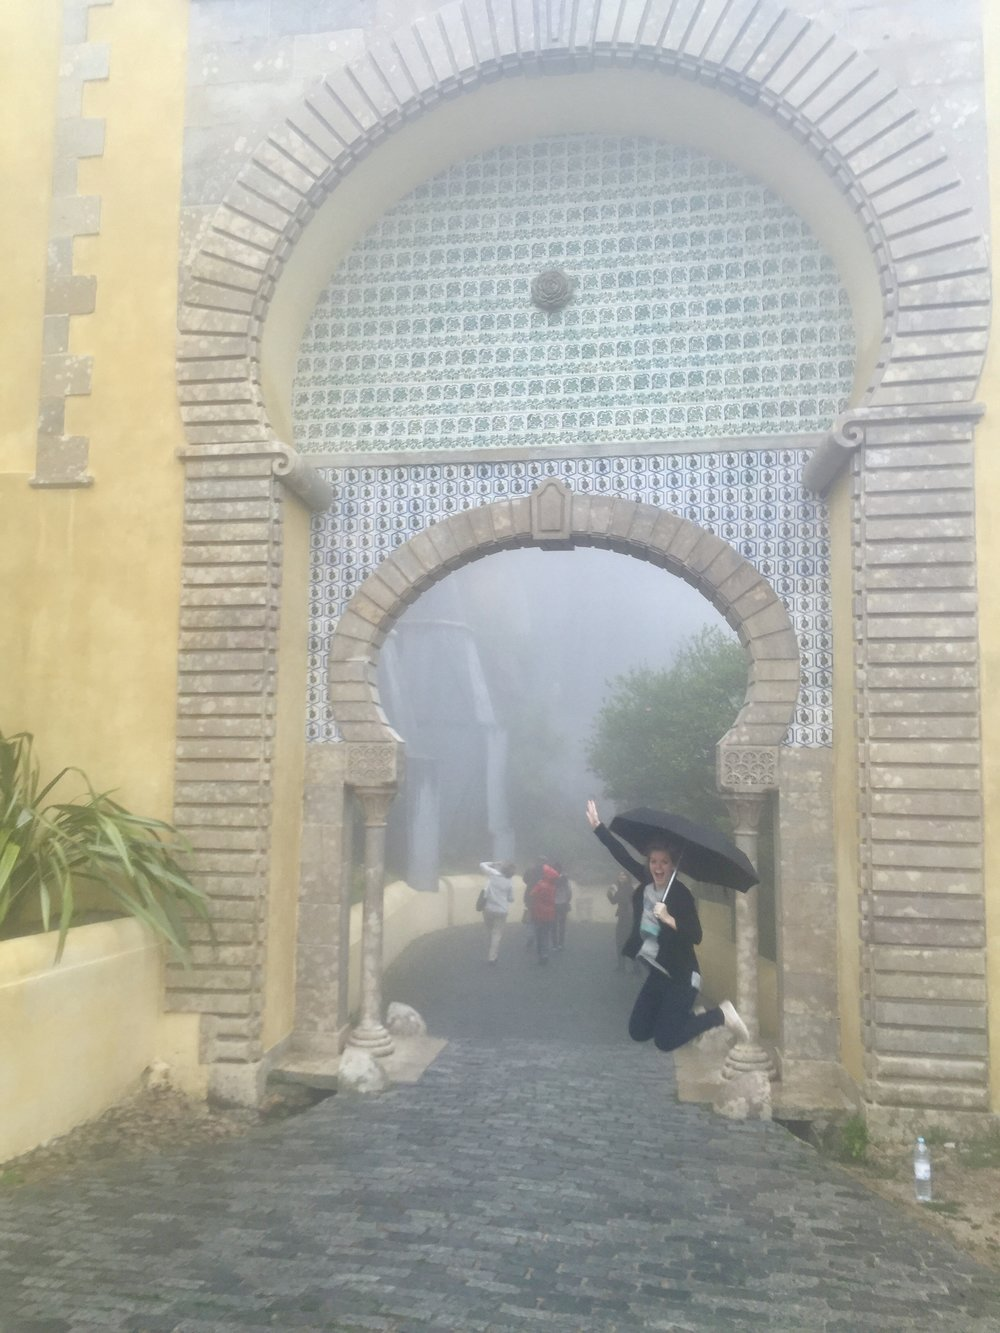 Exploring pena Palace with the craziest weather